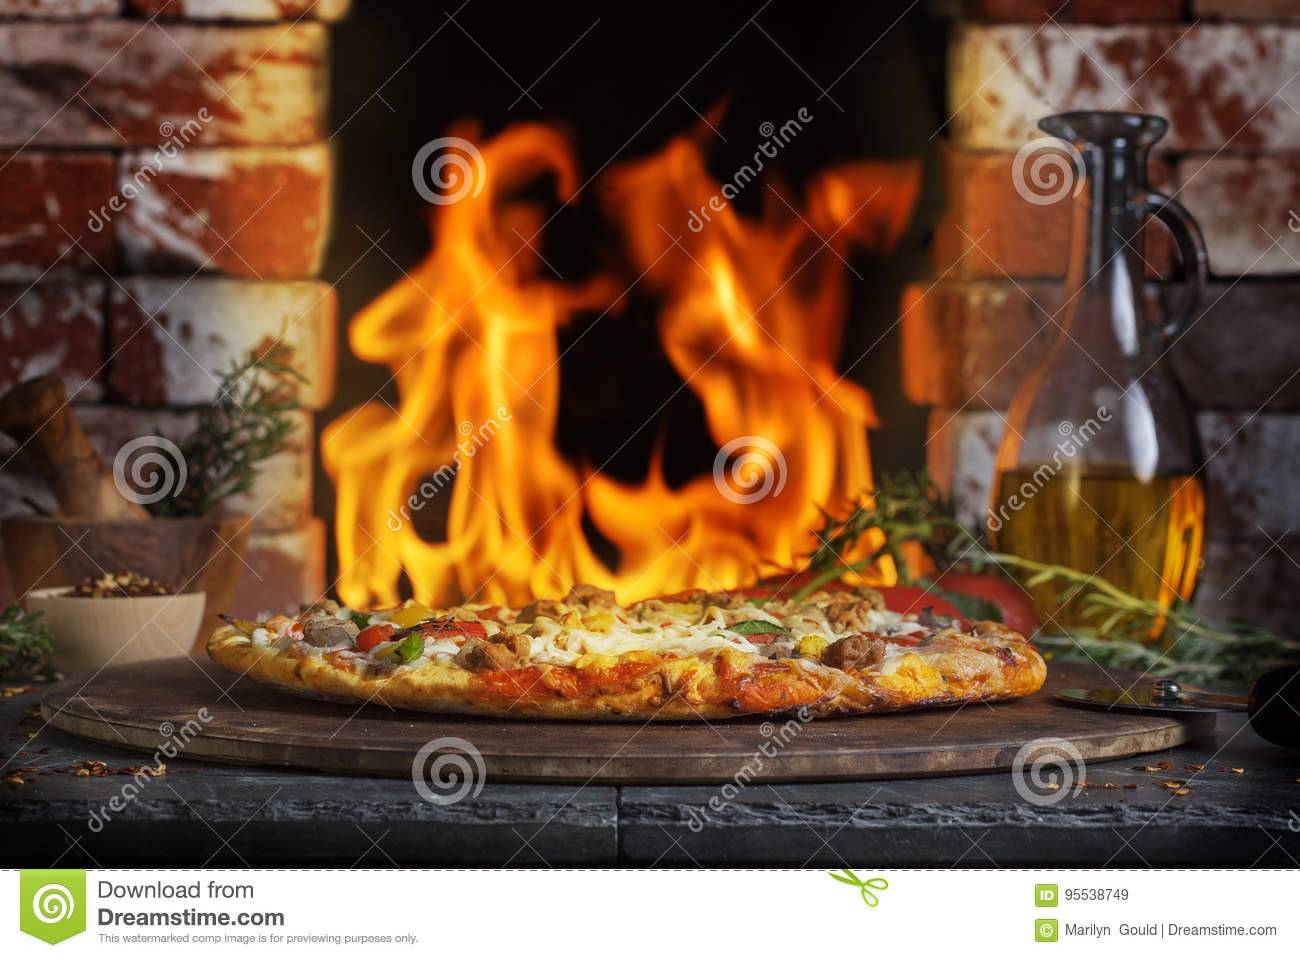 pizza ziegelstein feuer ofen stockbild bild von wurst flammen 95538749. Black Bedroom Furniture Sets. Home Design Ideas